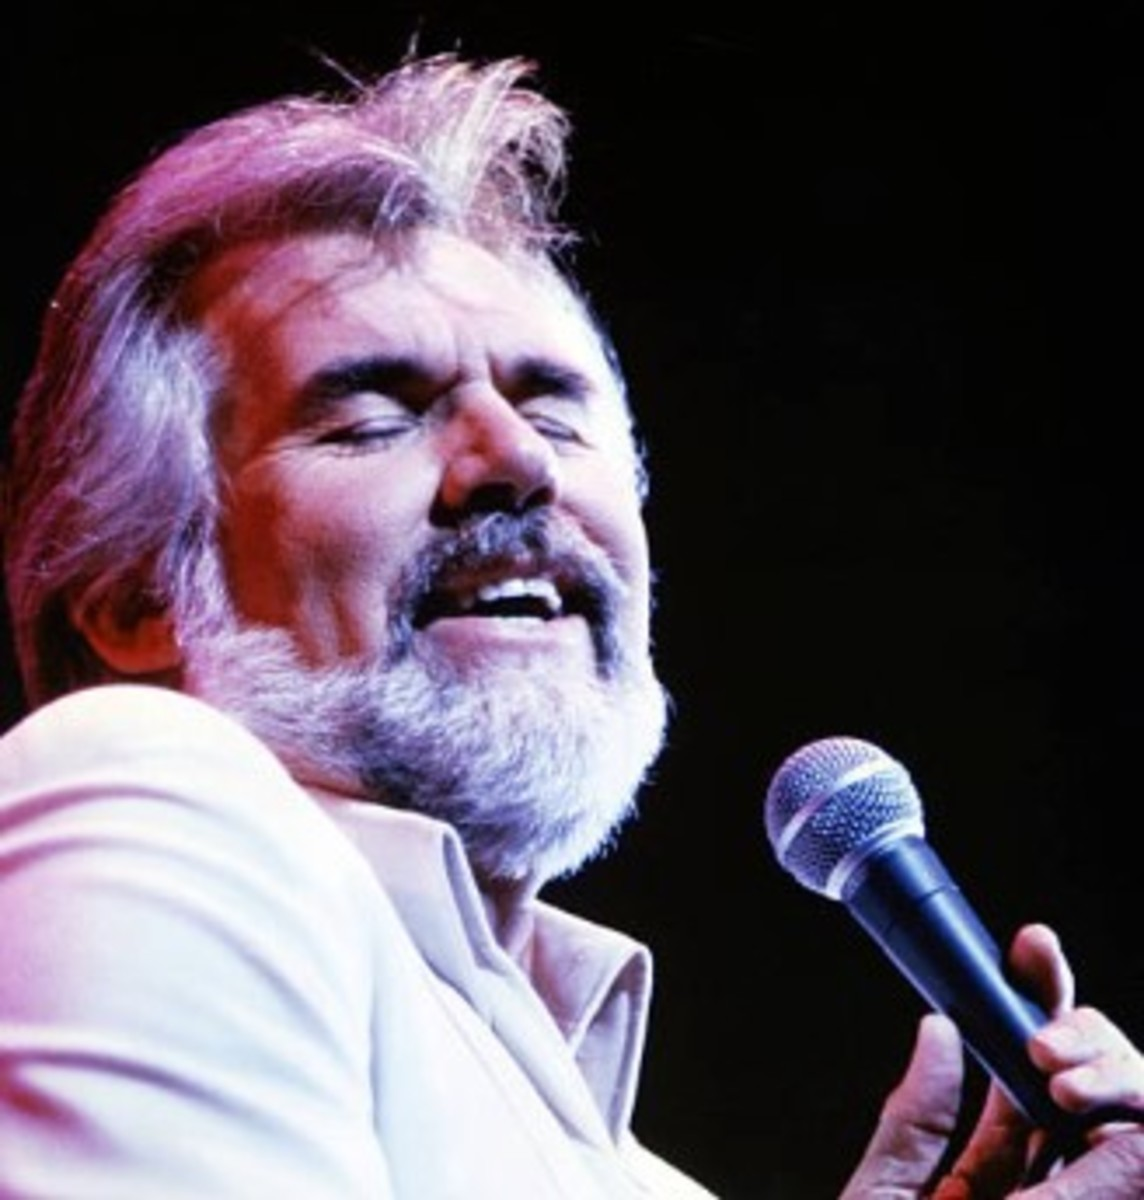 Kenny Rogers in concert, circa 1980, Getty Images